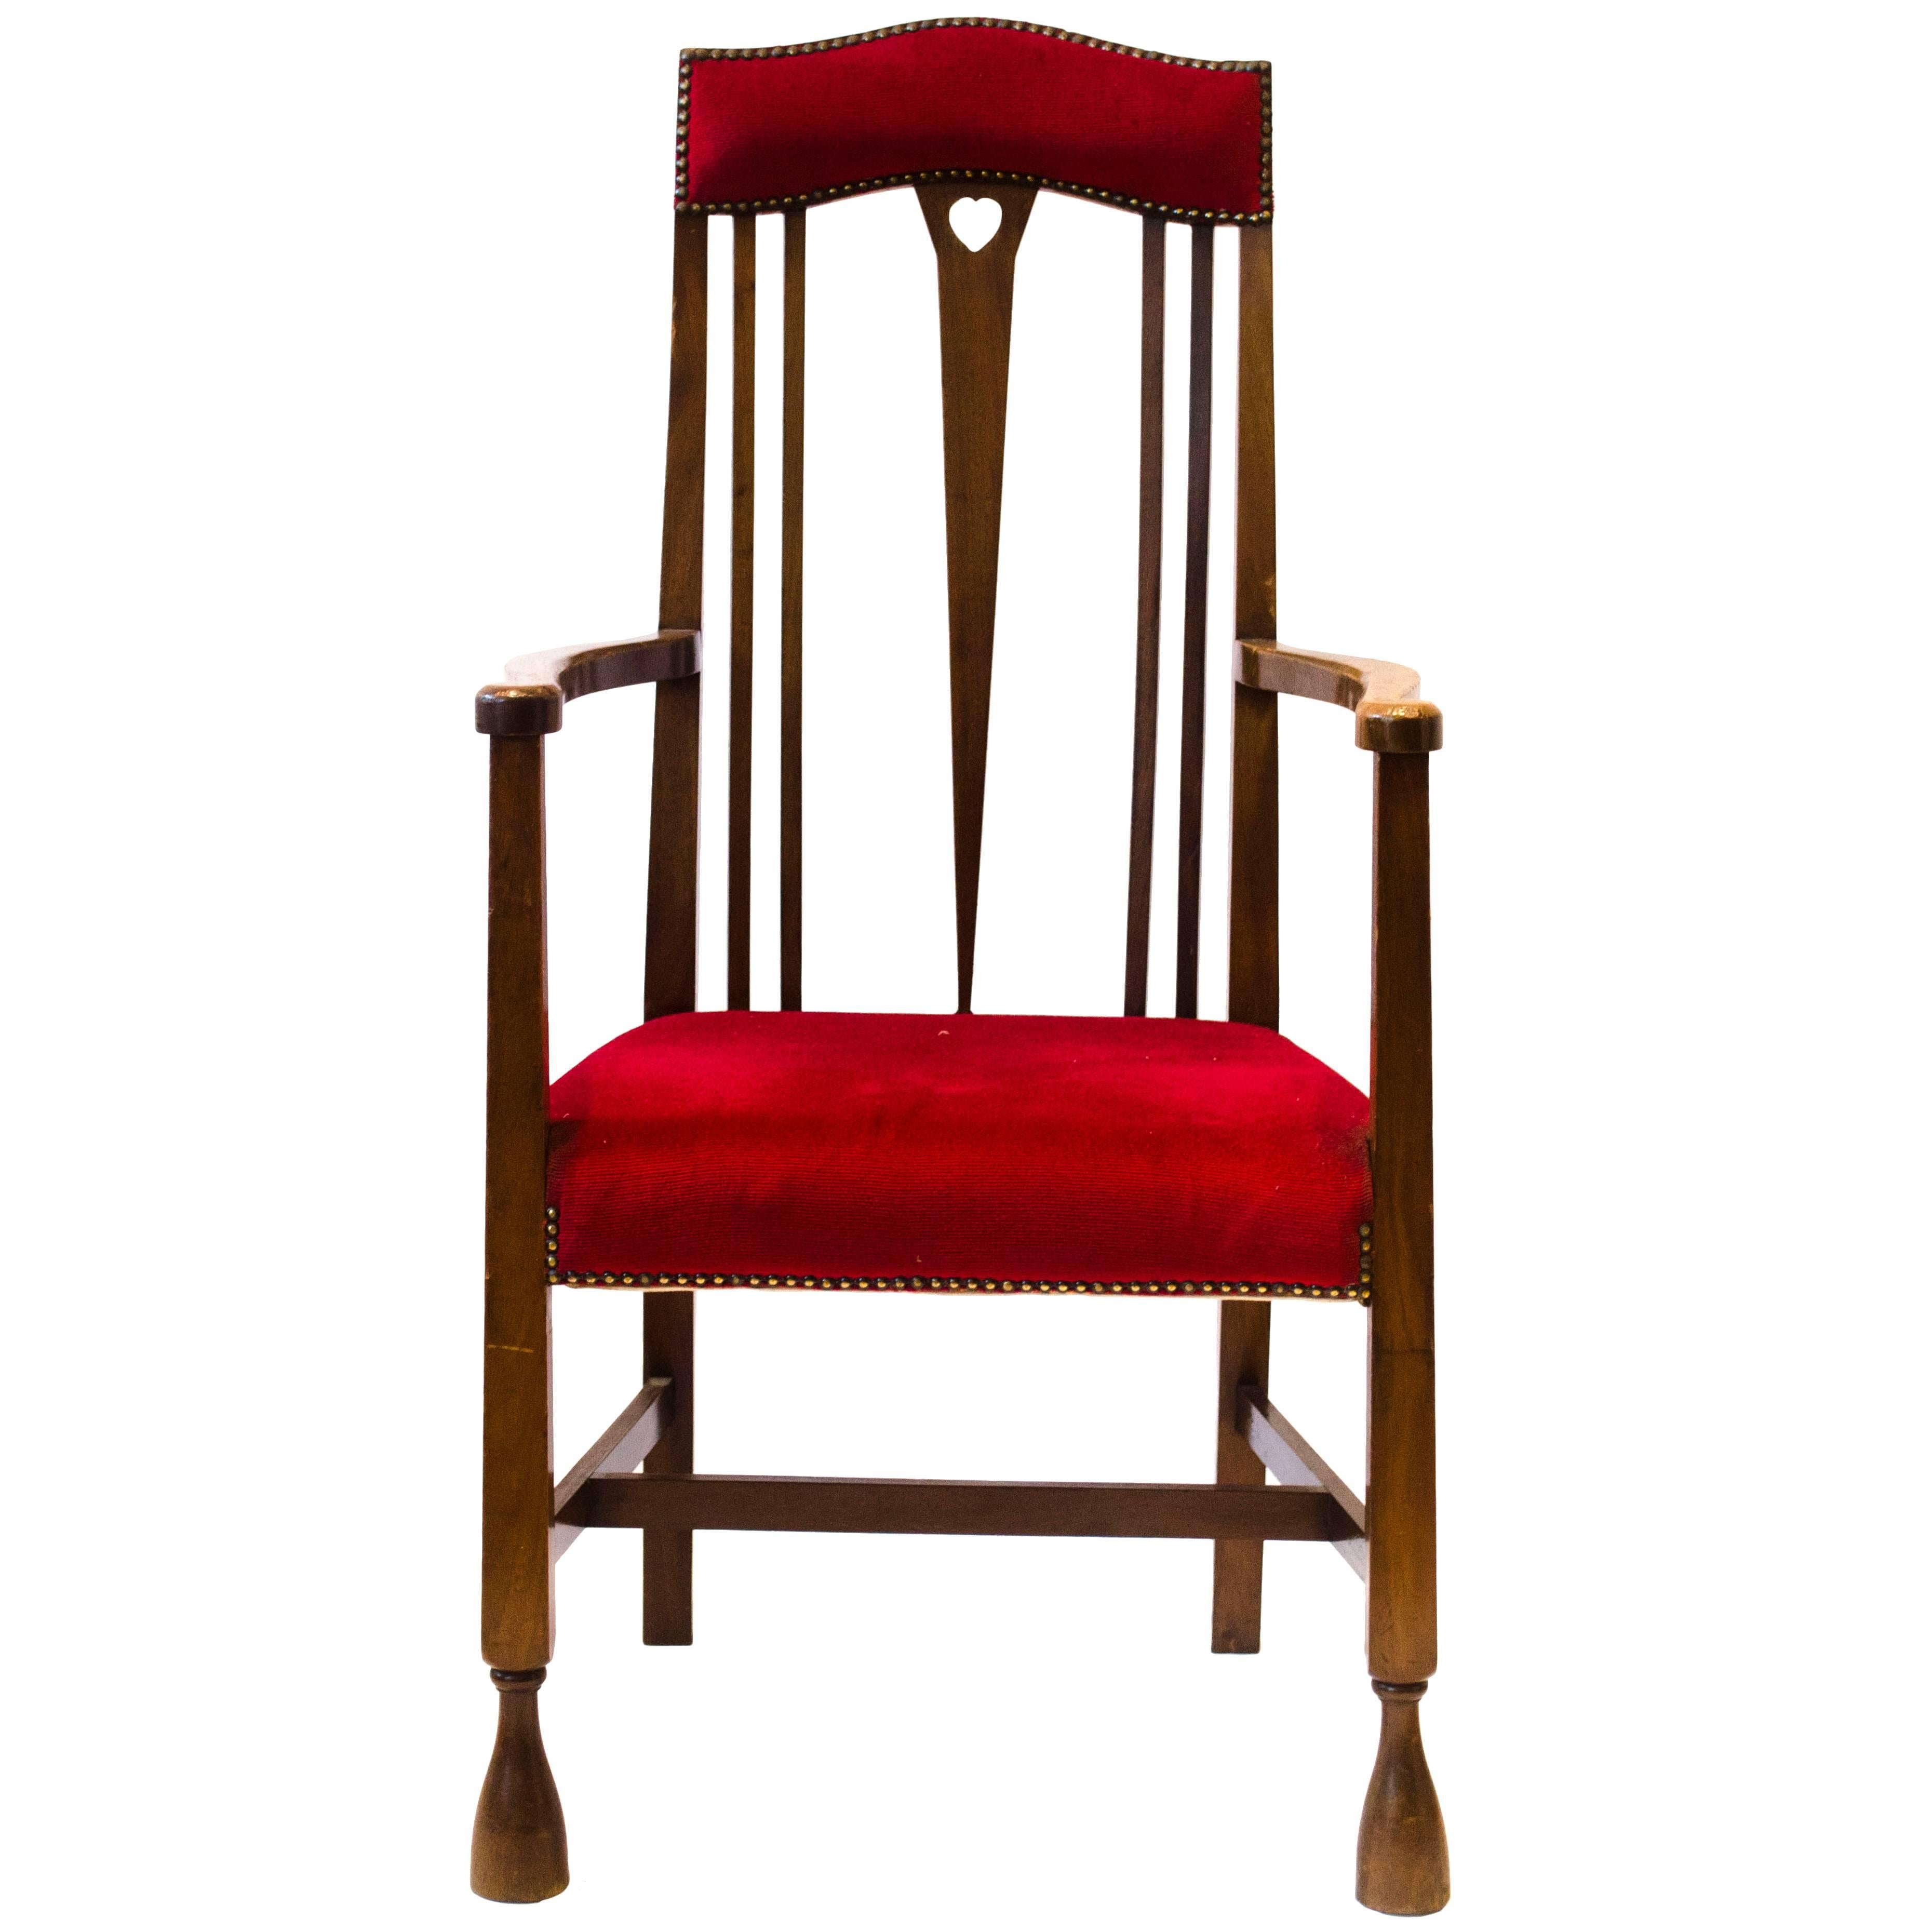 Liberty & Co, Attr An Arts & Crafts Mahogany Armchair Inlaid with a Pewter Heart